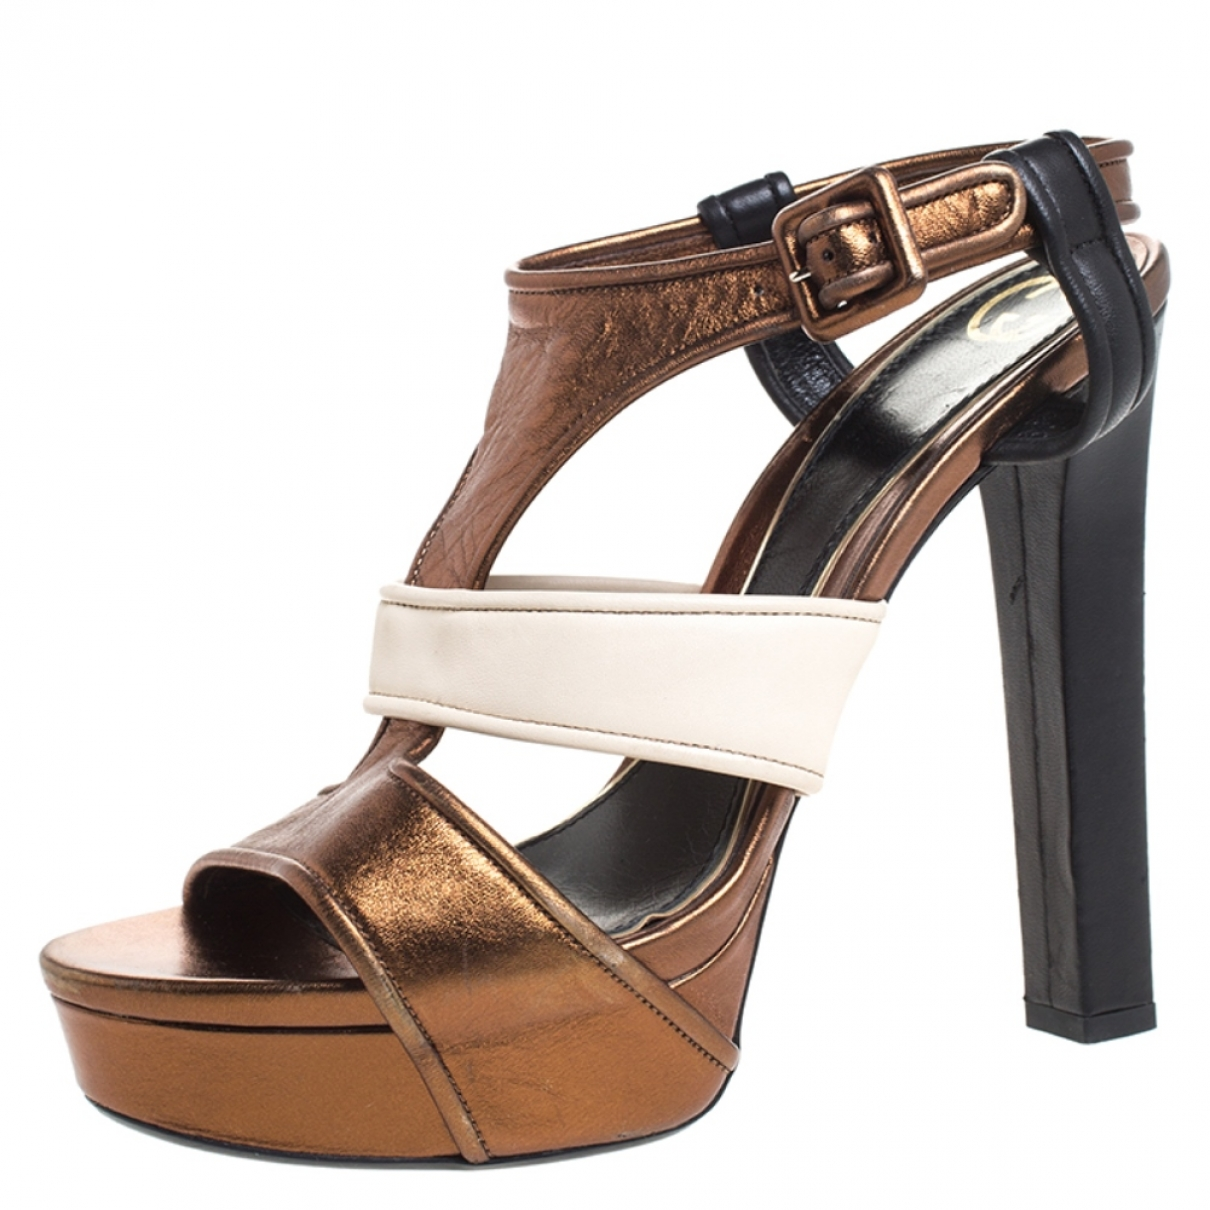 Gucci \N Metallic Leather Sandals for Women 9.5 US